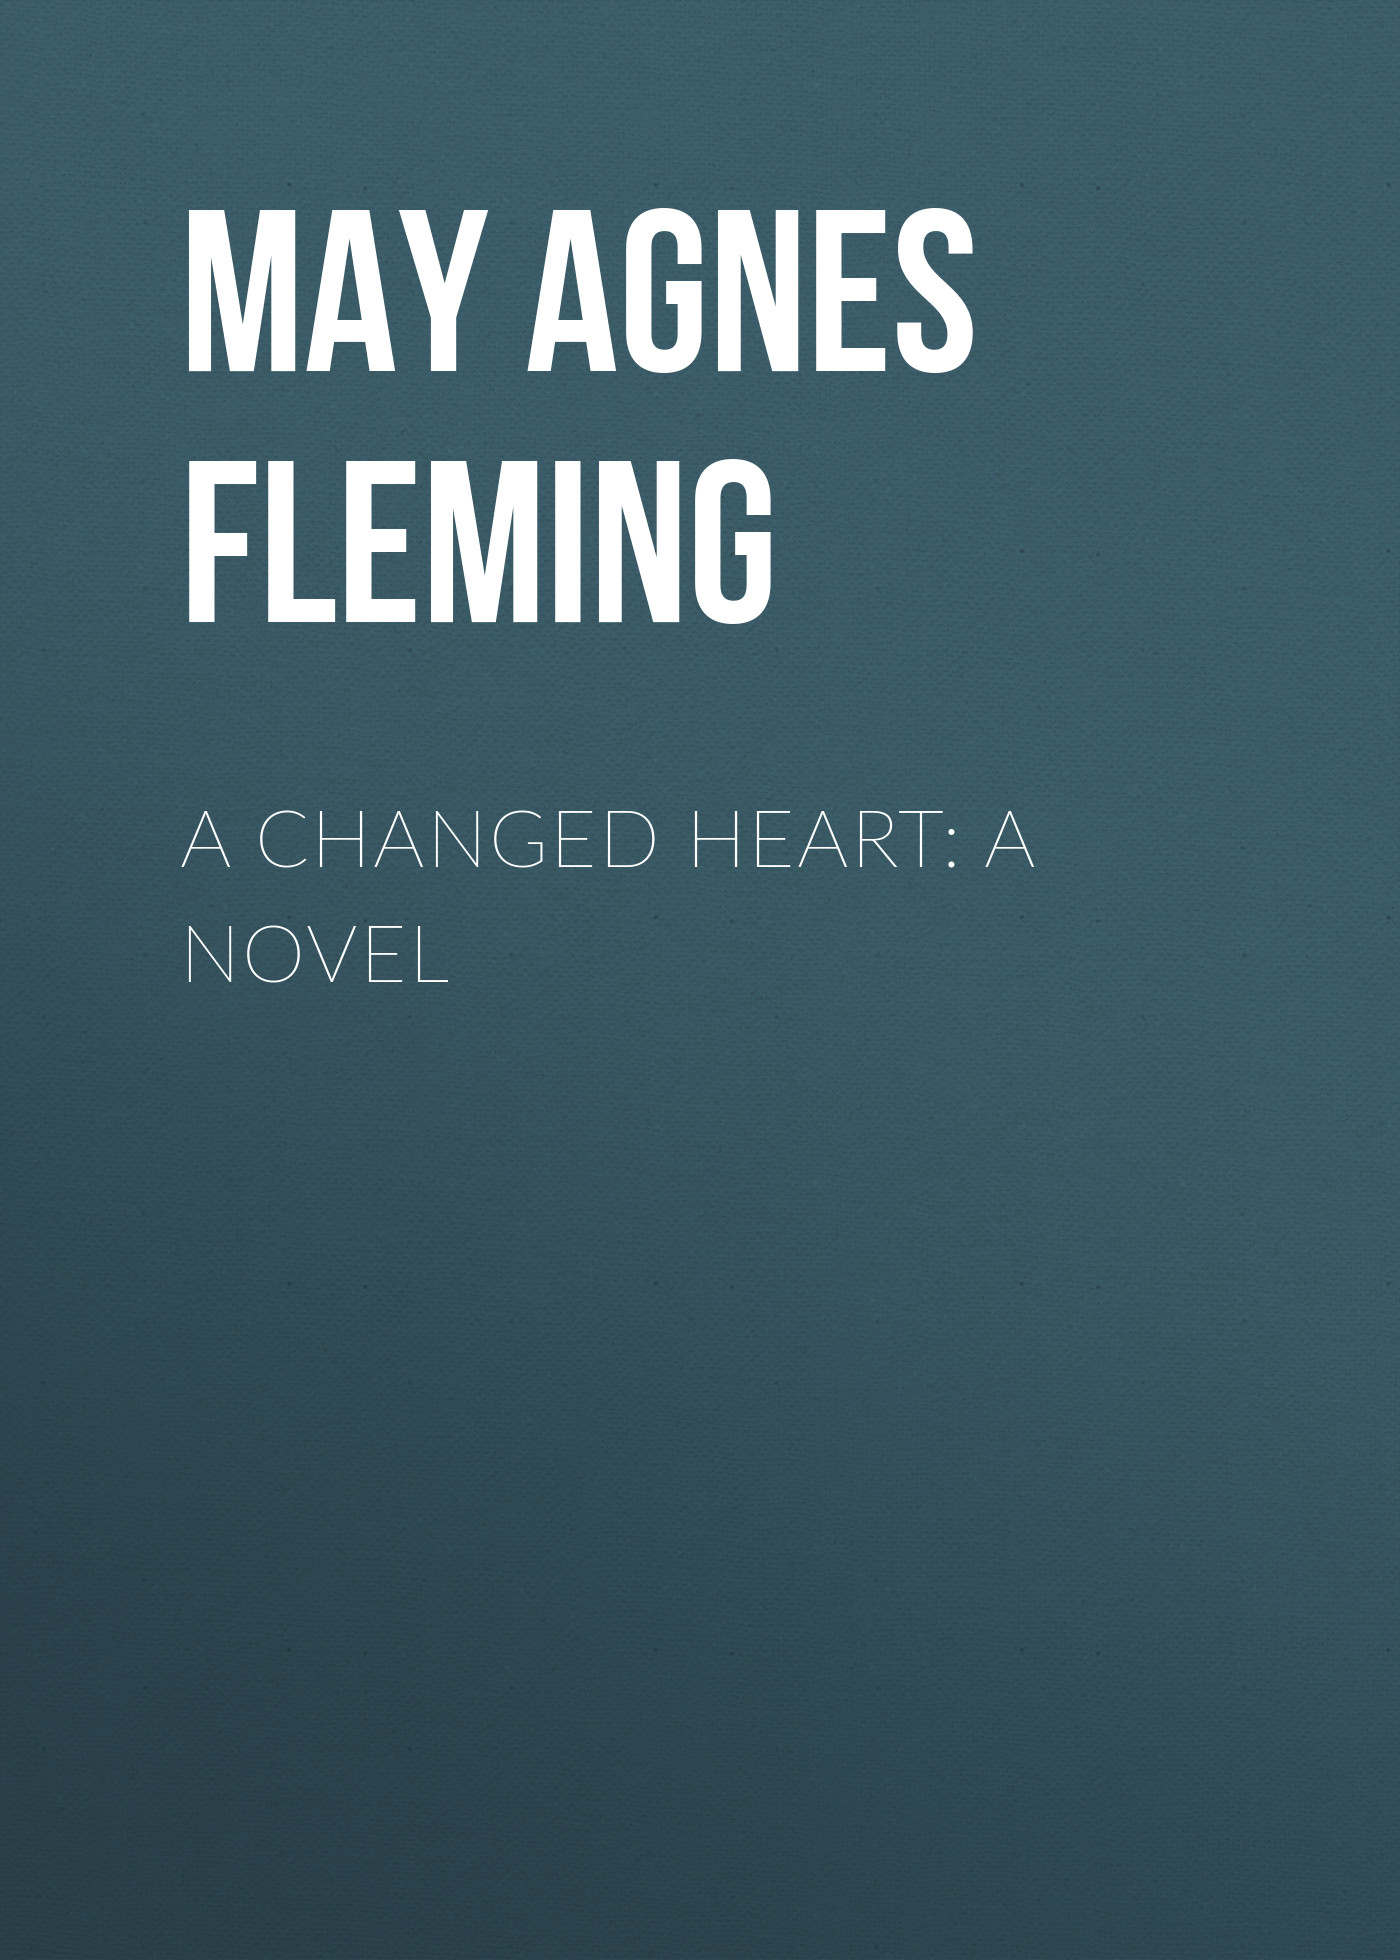 May Agnes Fleming A Changed Heart: A Novel w h 1871 1940 davies a weak woman a novel